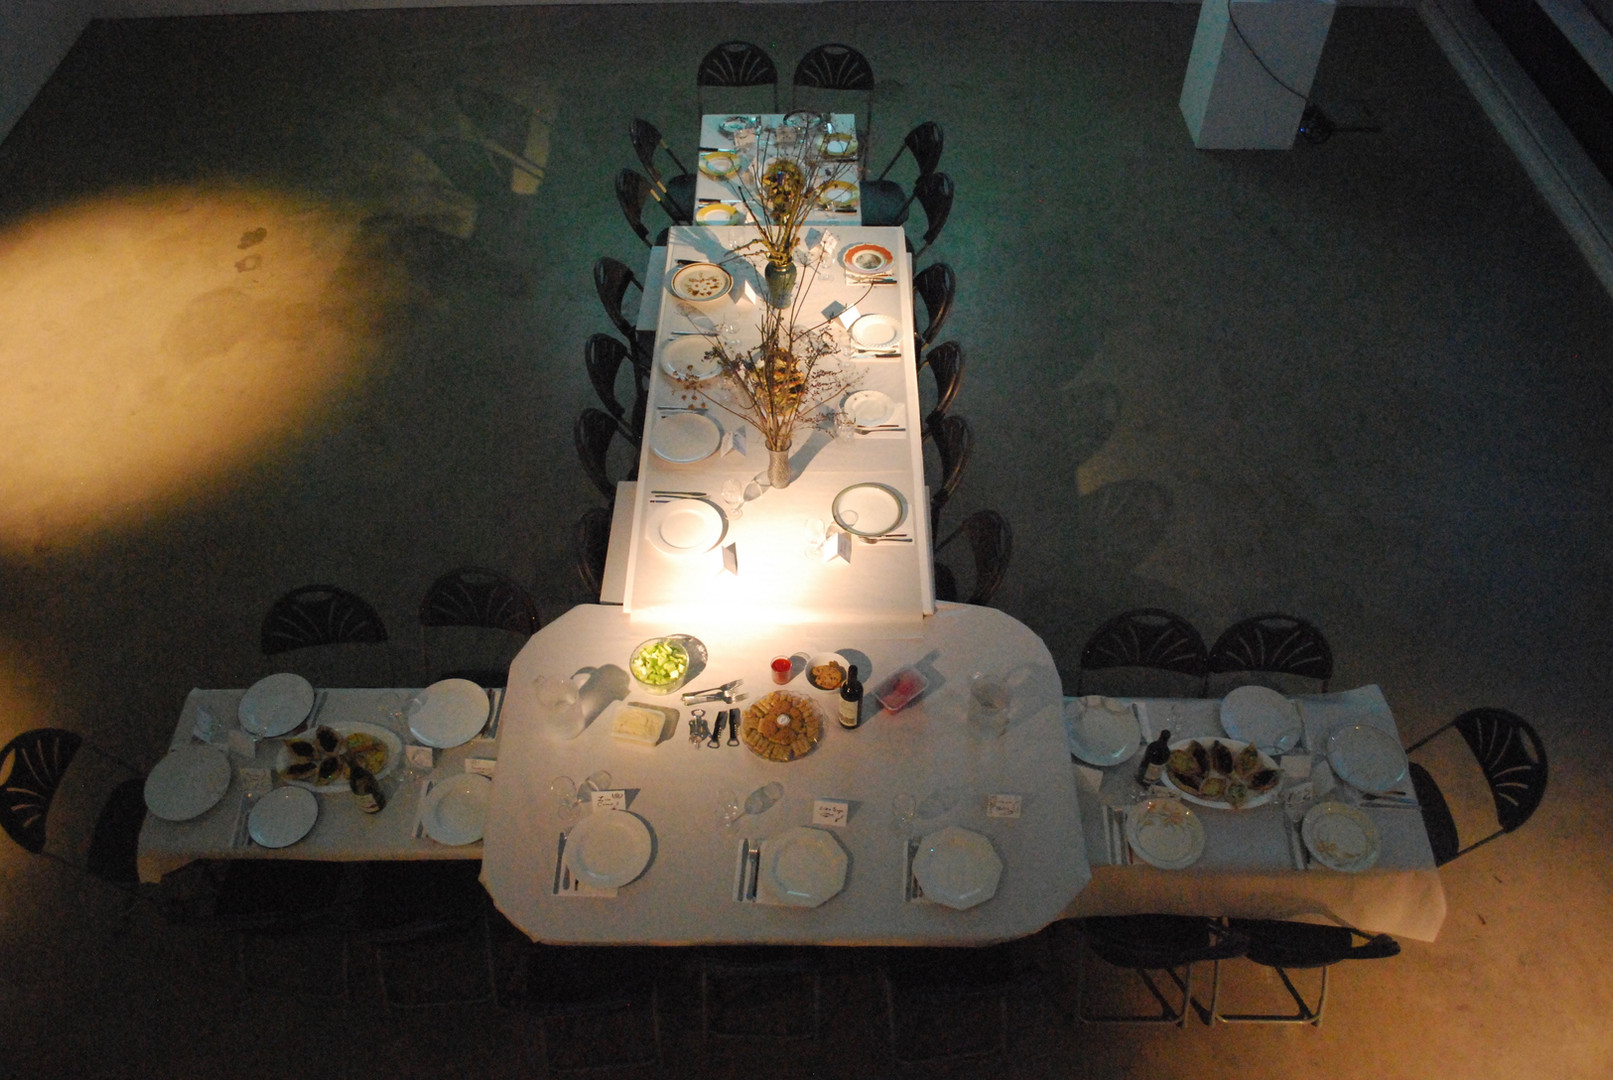 The table is set and ready!